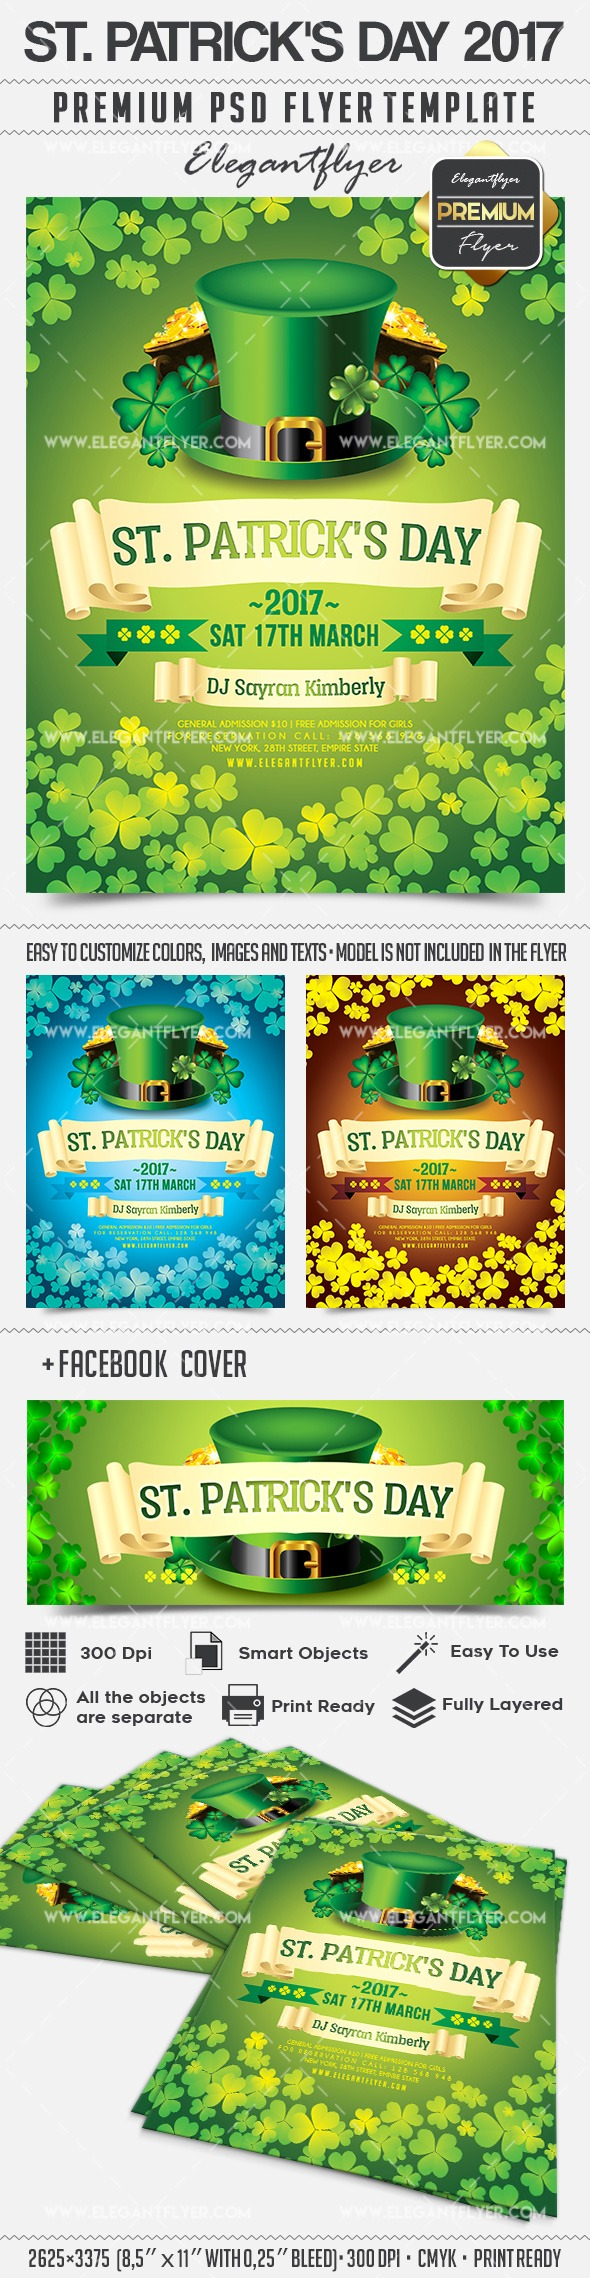 st  patrick u2019s day 2017  u2013 flyer psd template  u2013 by elegantflyer